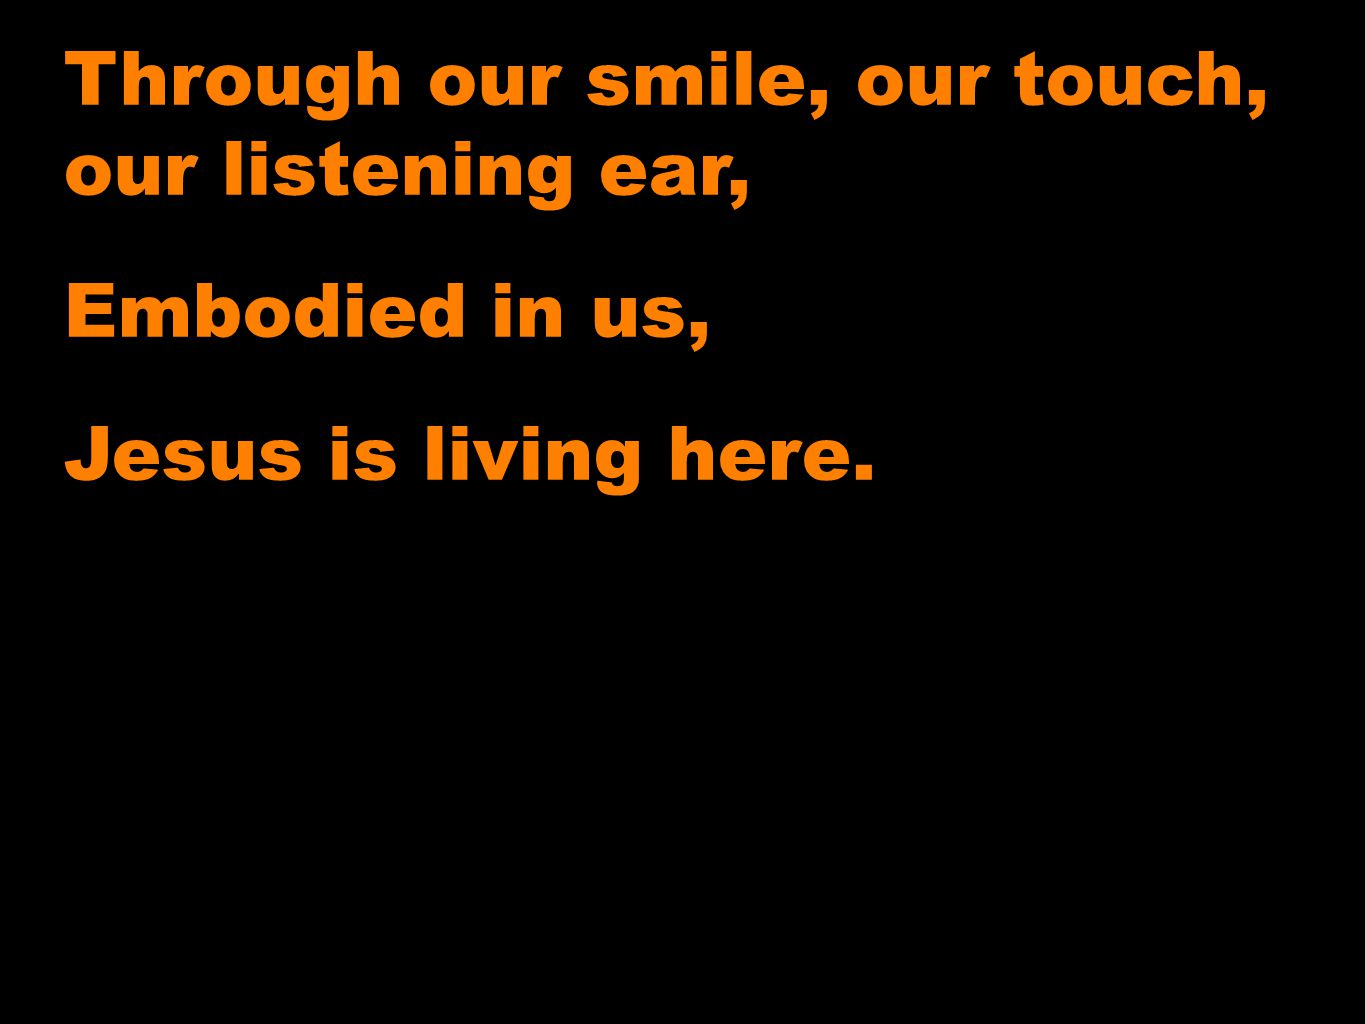 Through our smile, our touch, our listening ear, Embodied in us, Jesus is living here.